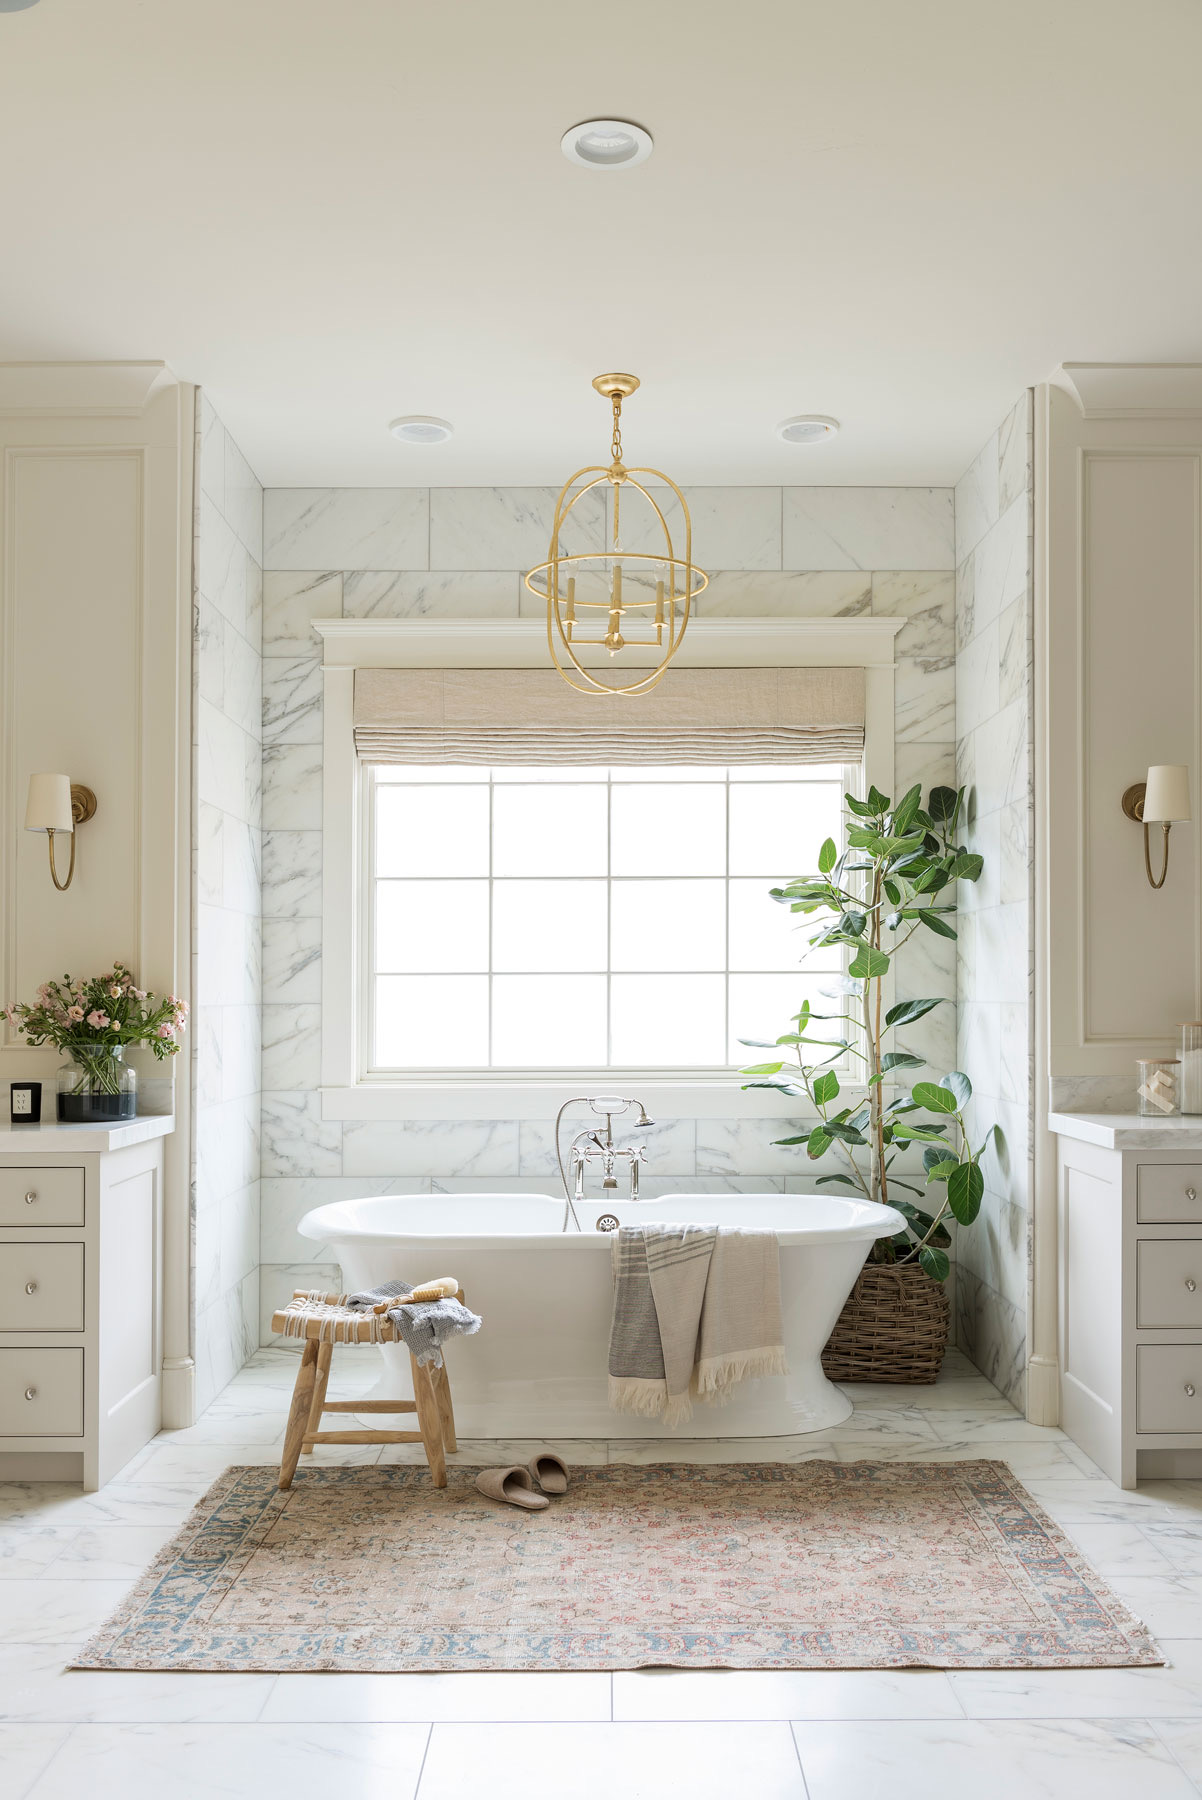 standalone bath tub with nickel faucet and brass lighting